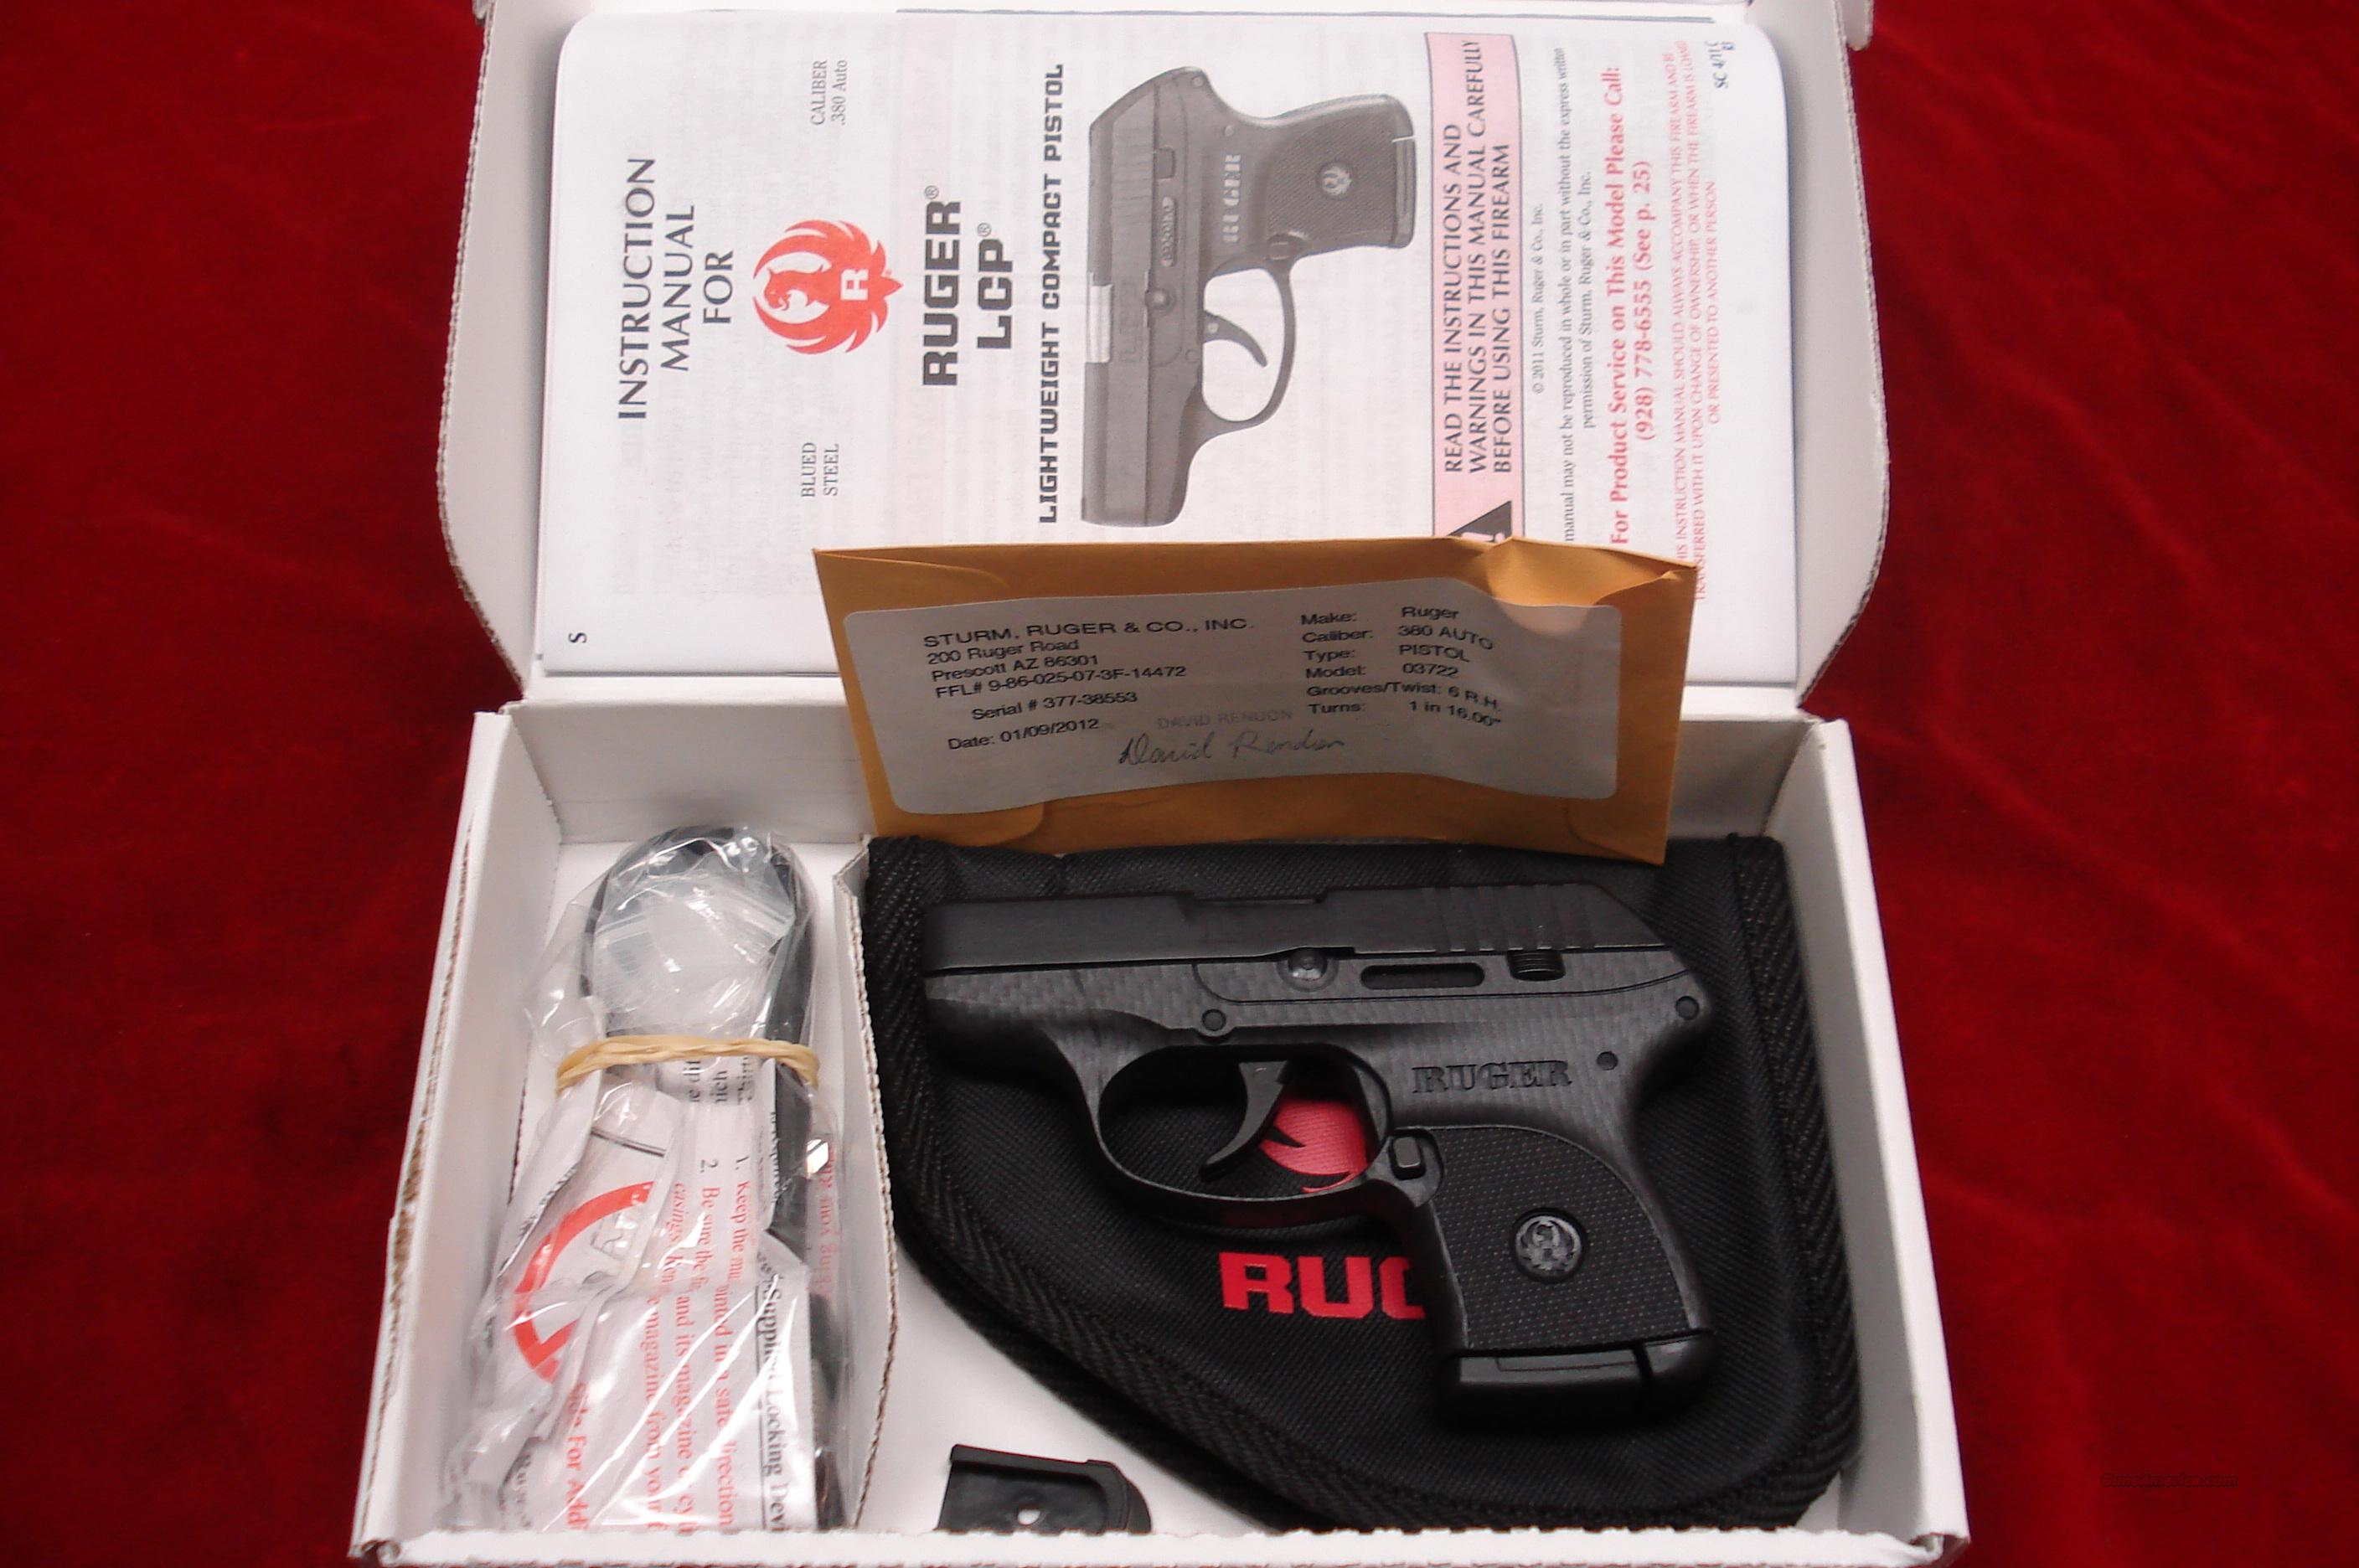 RUGER CARBON FIBER LCP (Lightweight Compact Pistol) 380CAL. NEW  Guns > Pistols > Ruger Semi-Auto Pistols > LCP